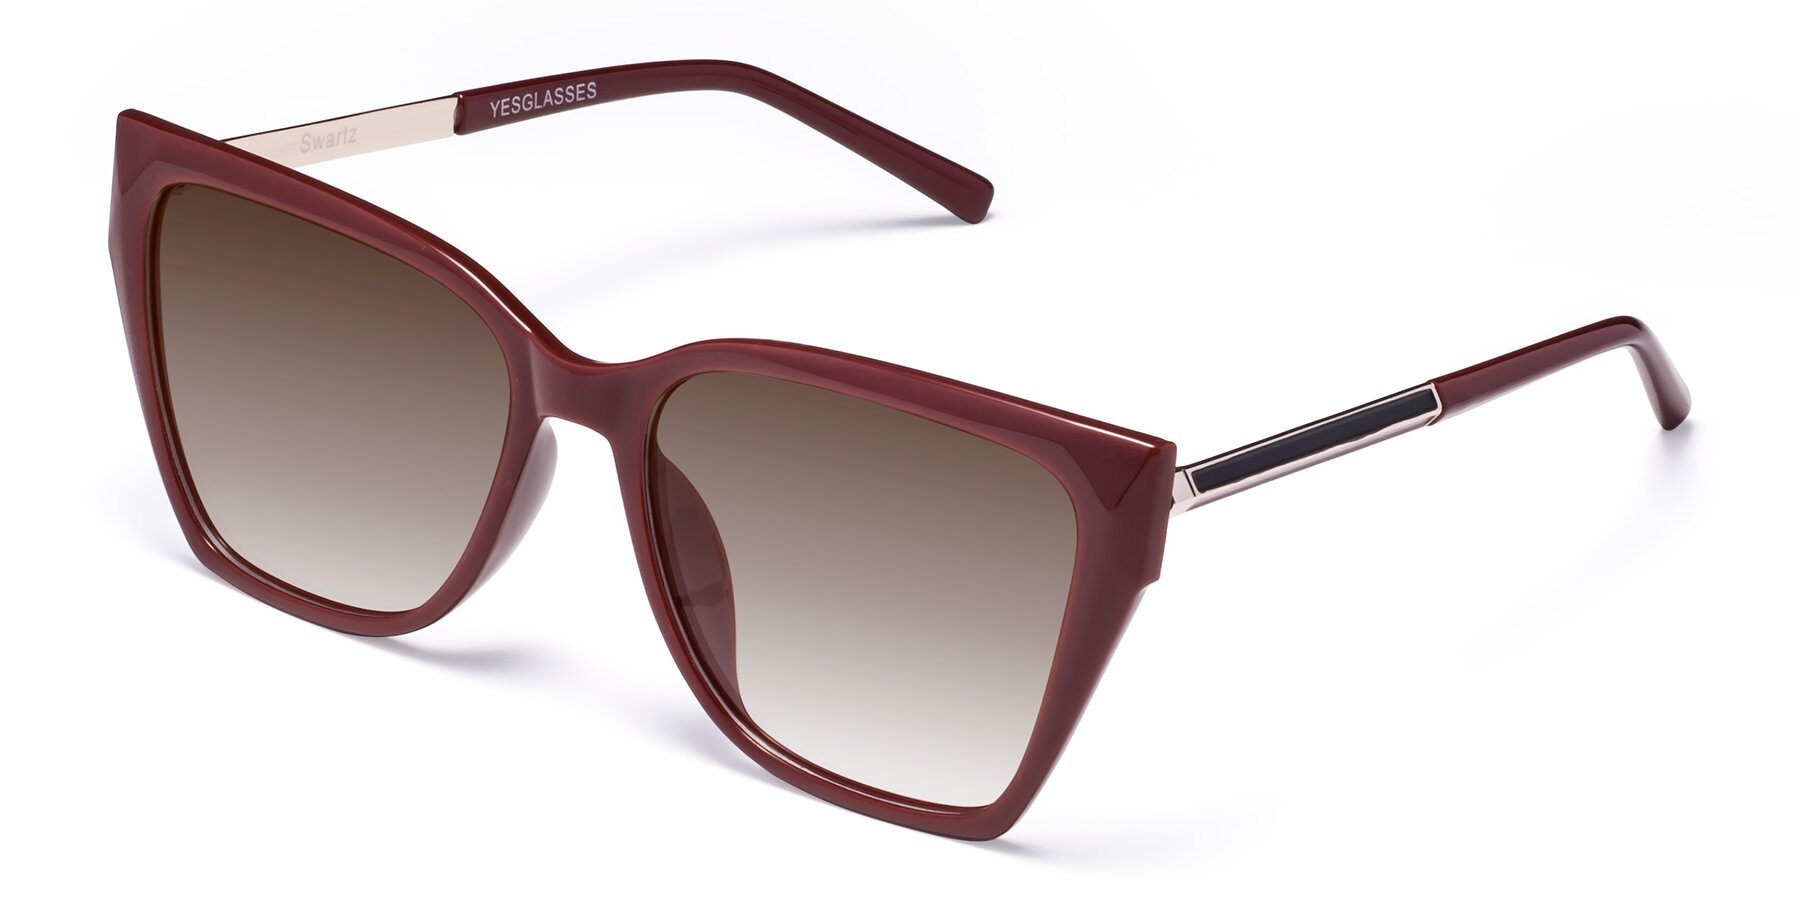 Angle of Swartz in Wine with Brown Gradient Lenses